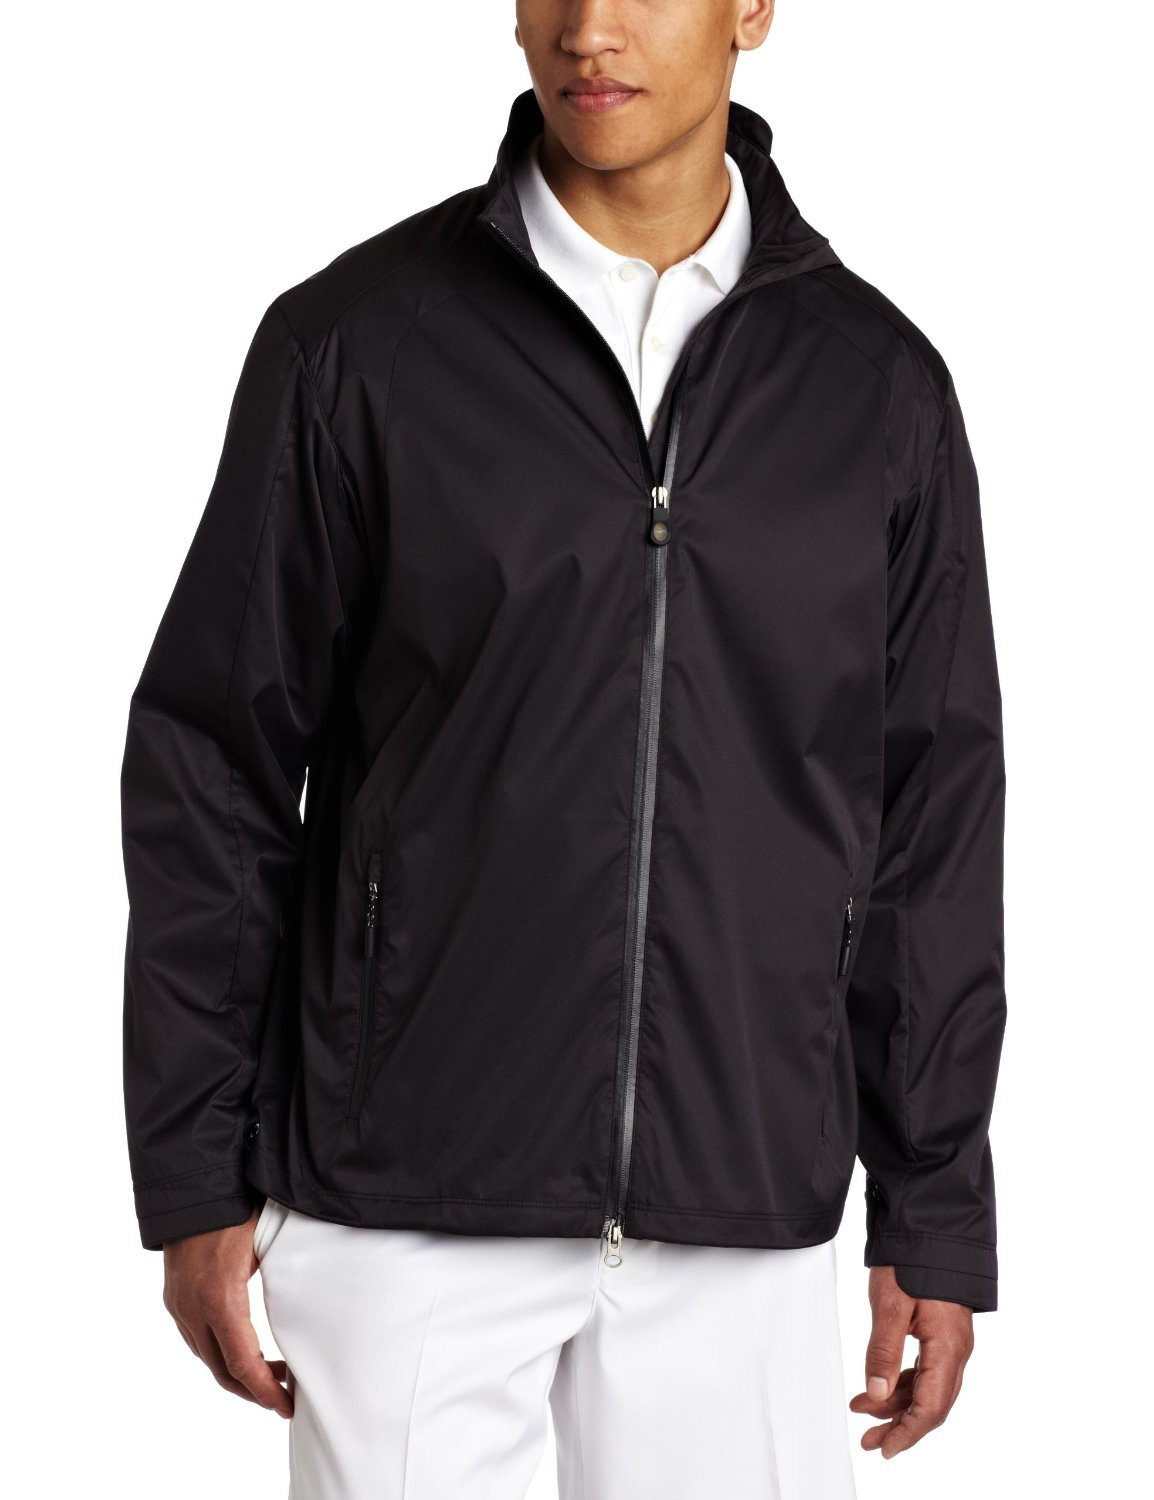 Greg Norman Mens Golf Jackets